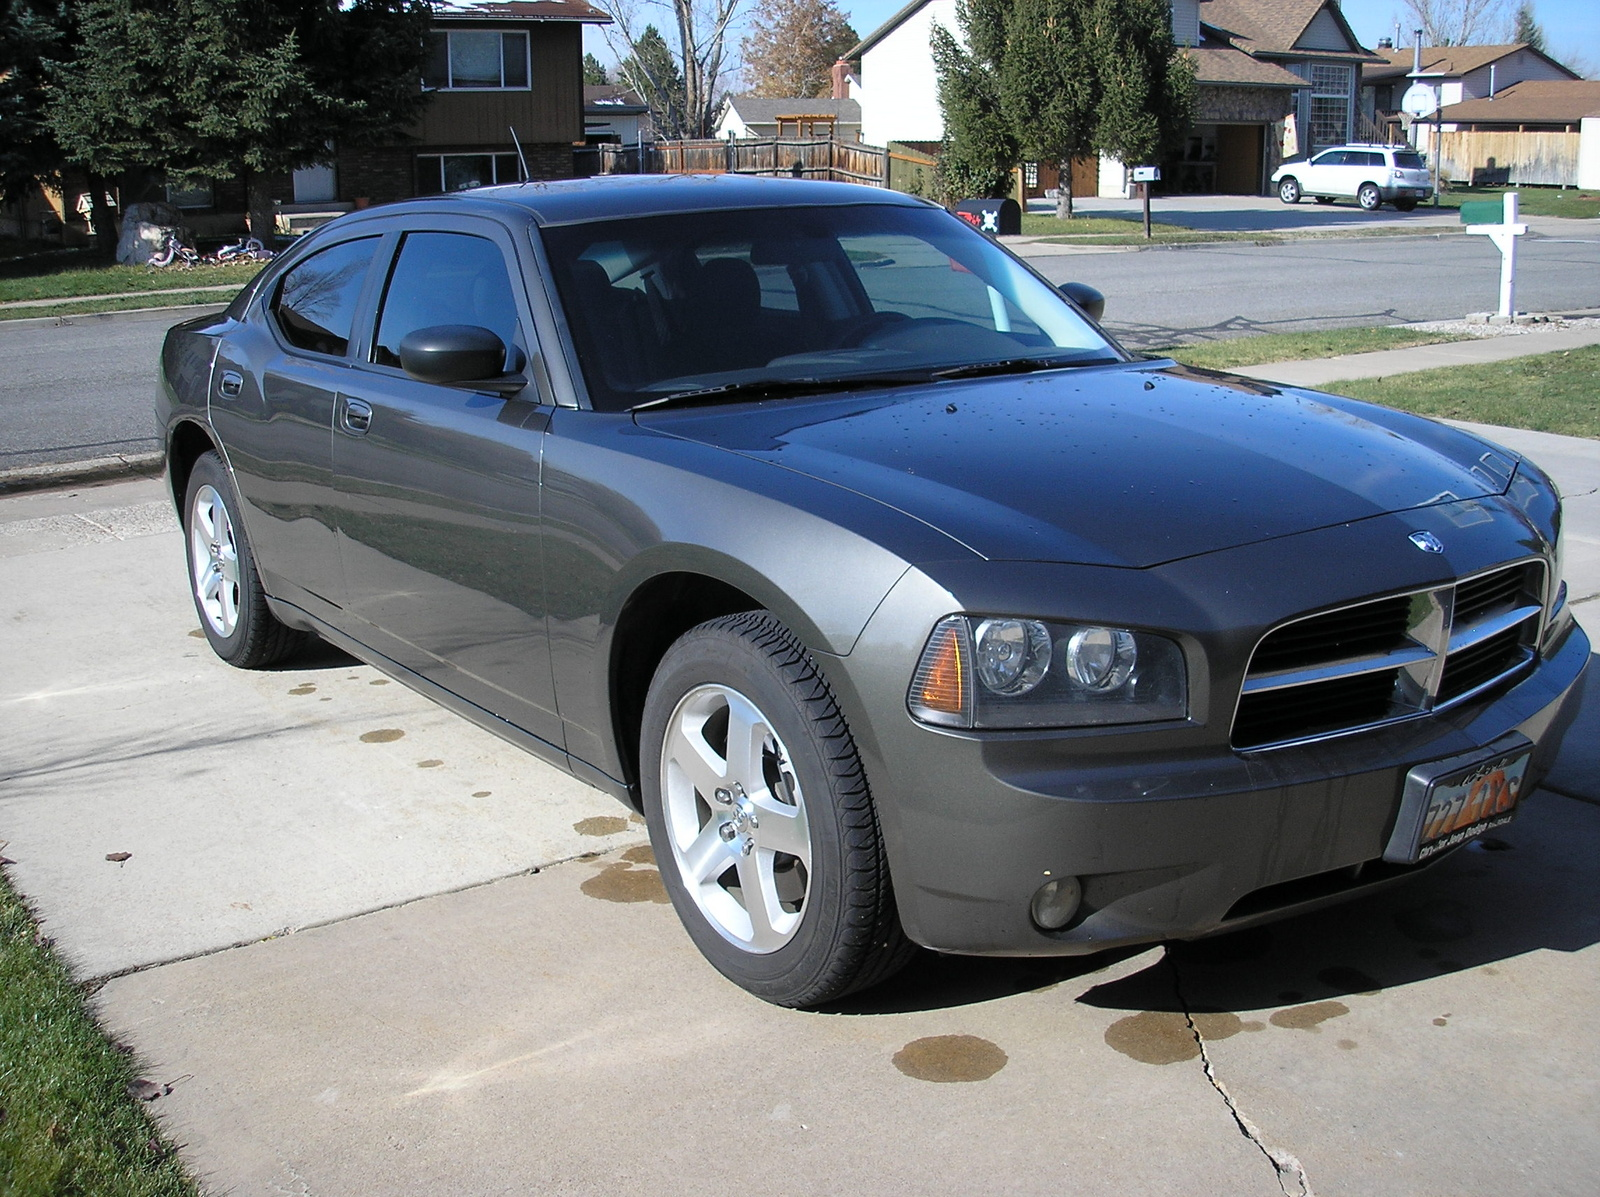 2008 Dodge Charger SXT AWD - Pictures - Picture of 2008 Dodge Charger ...